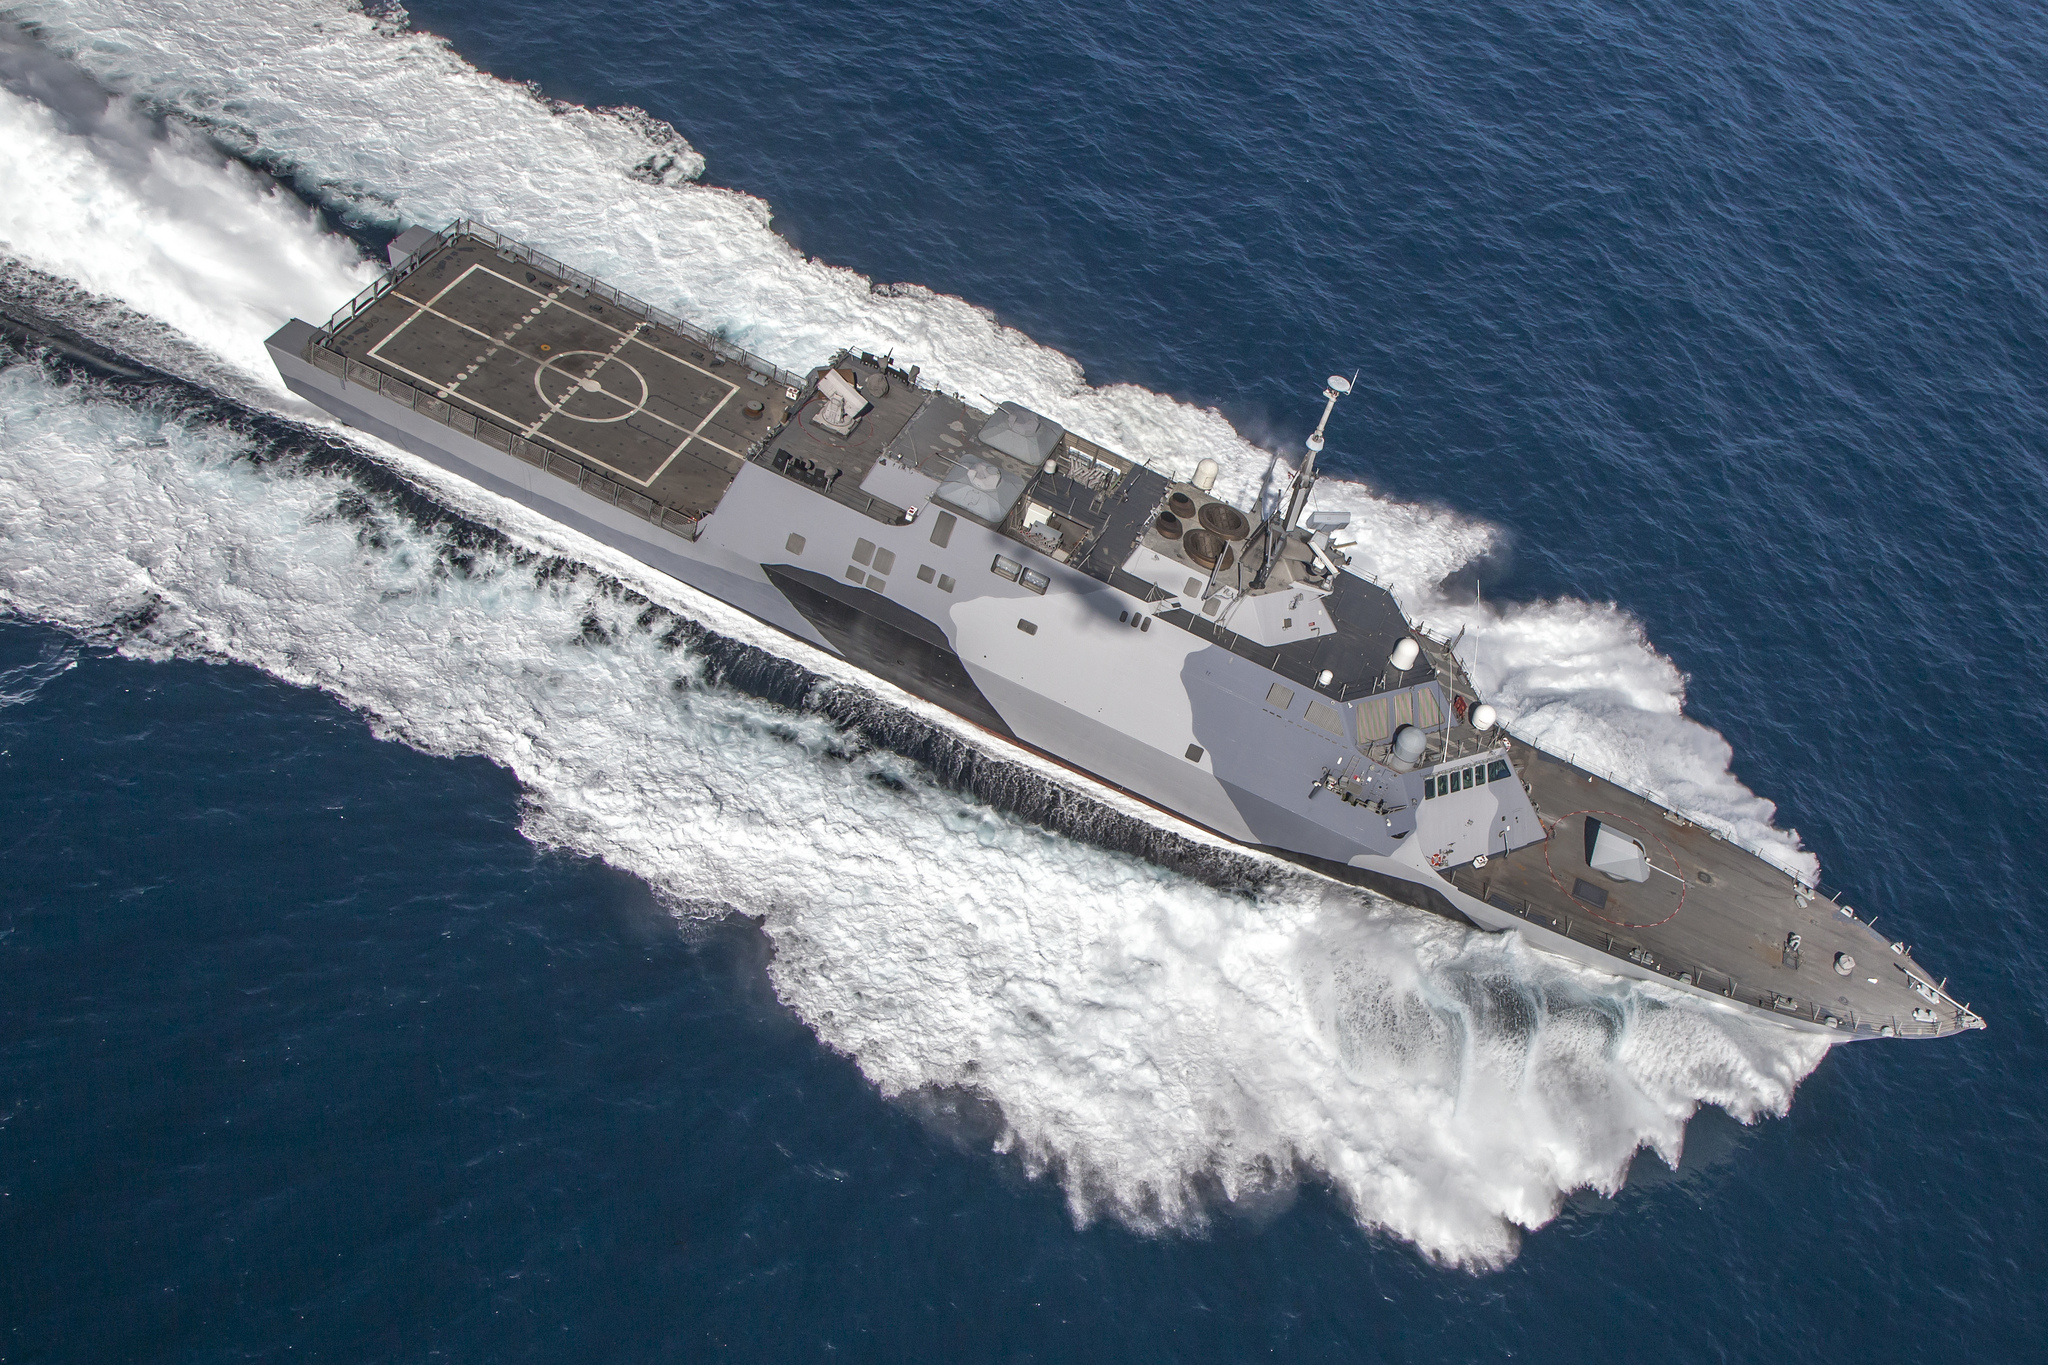 USS Freedom (LCS 1) undergoes testing and preparations off the coast of San Diego prior to its deployment to Southeast Asia in spring of 2013. (Lockheed Martin)